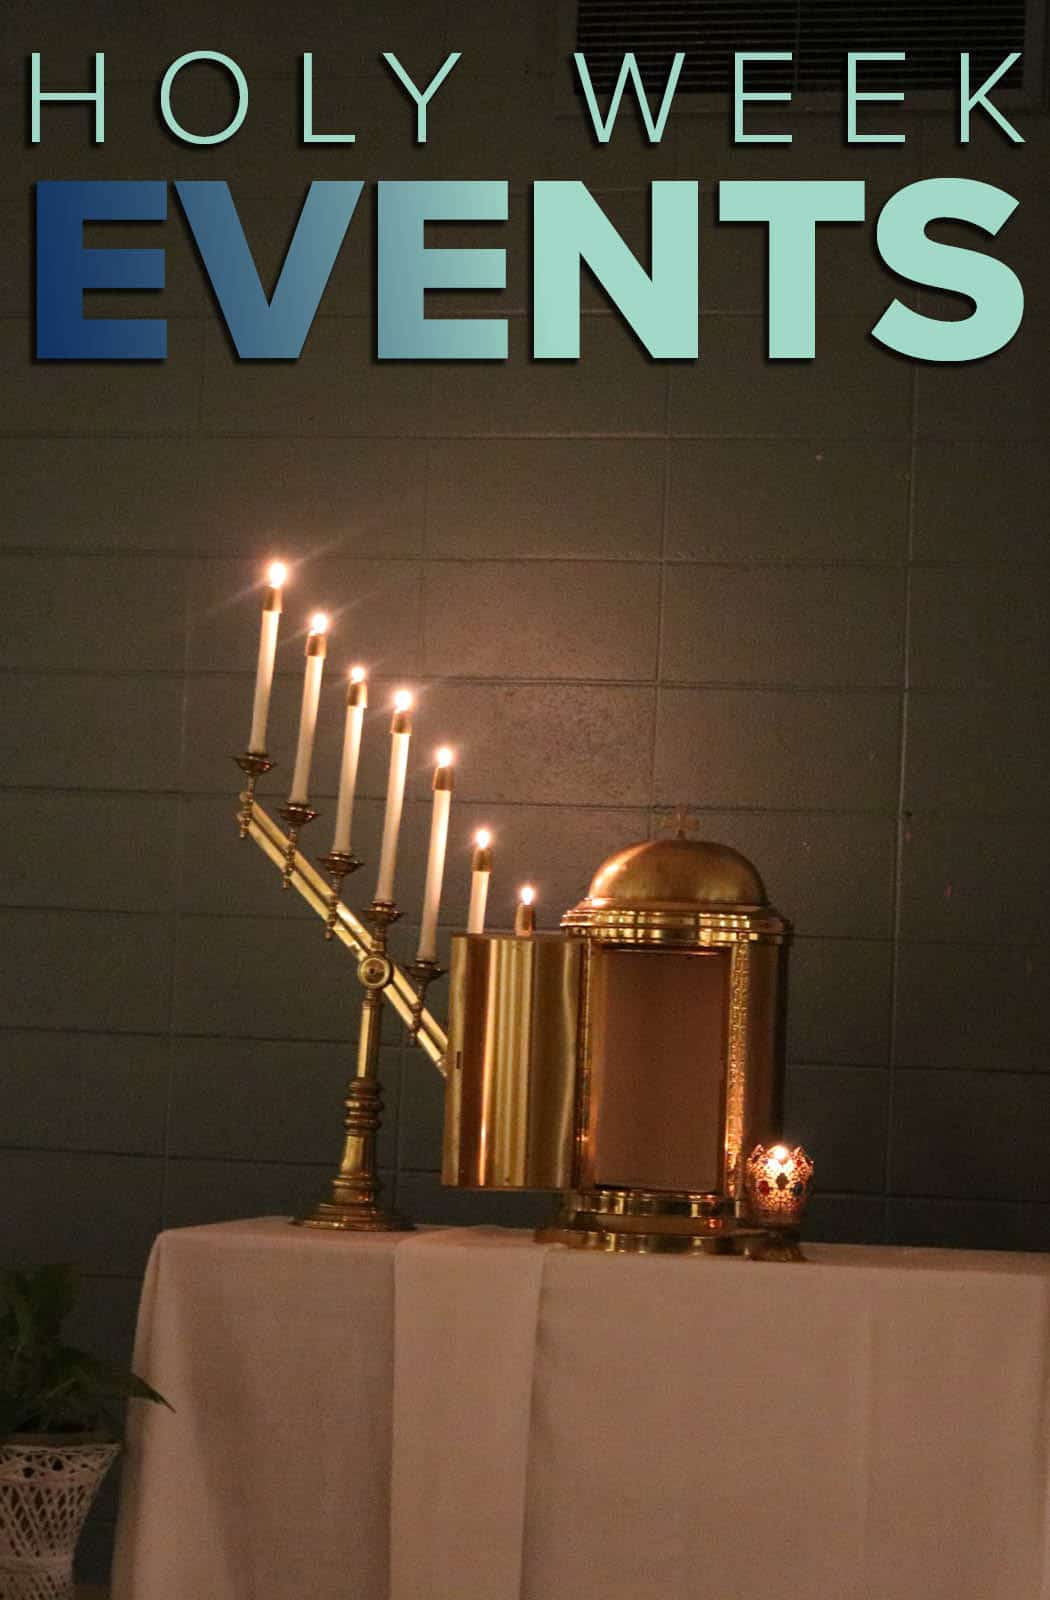 Upcoming Events for Holy Week